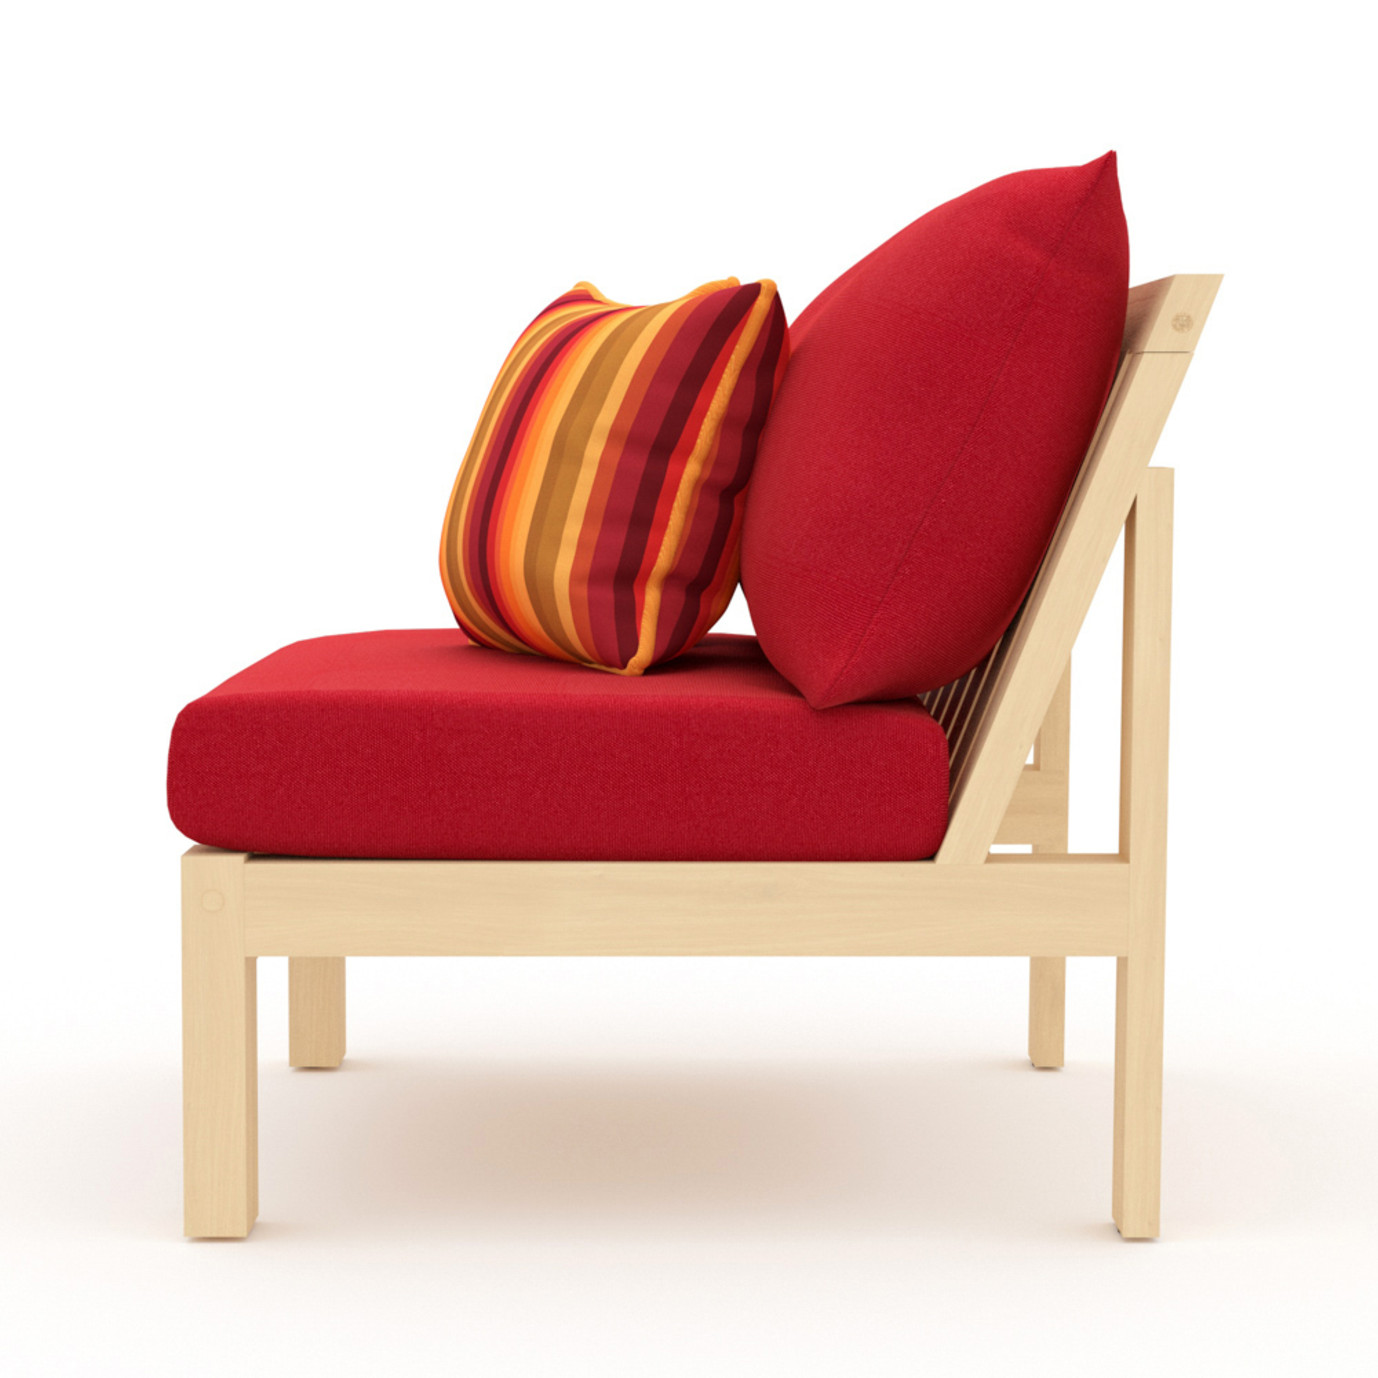 Benson Armless Chairs - Sunset Red